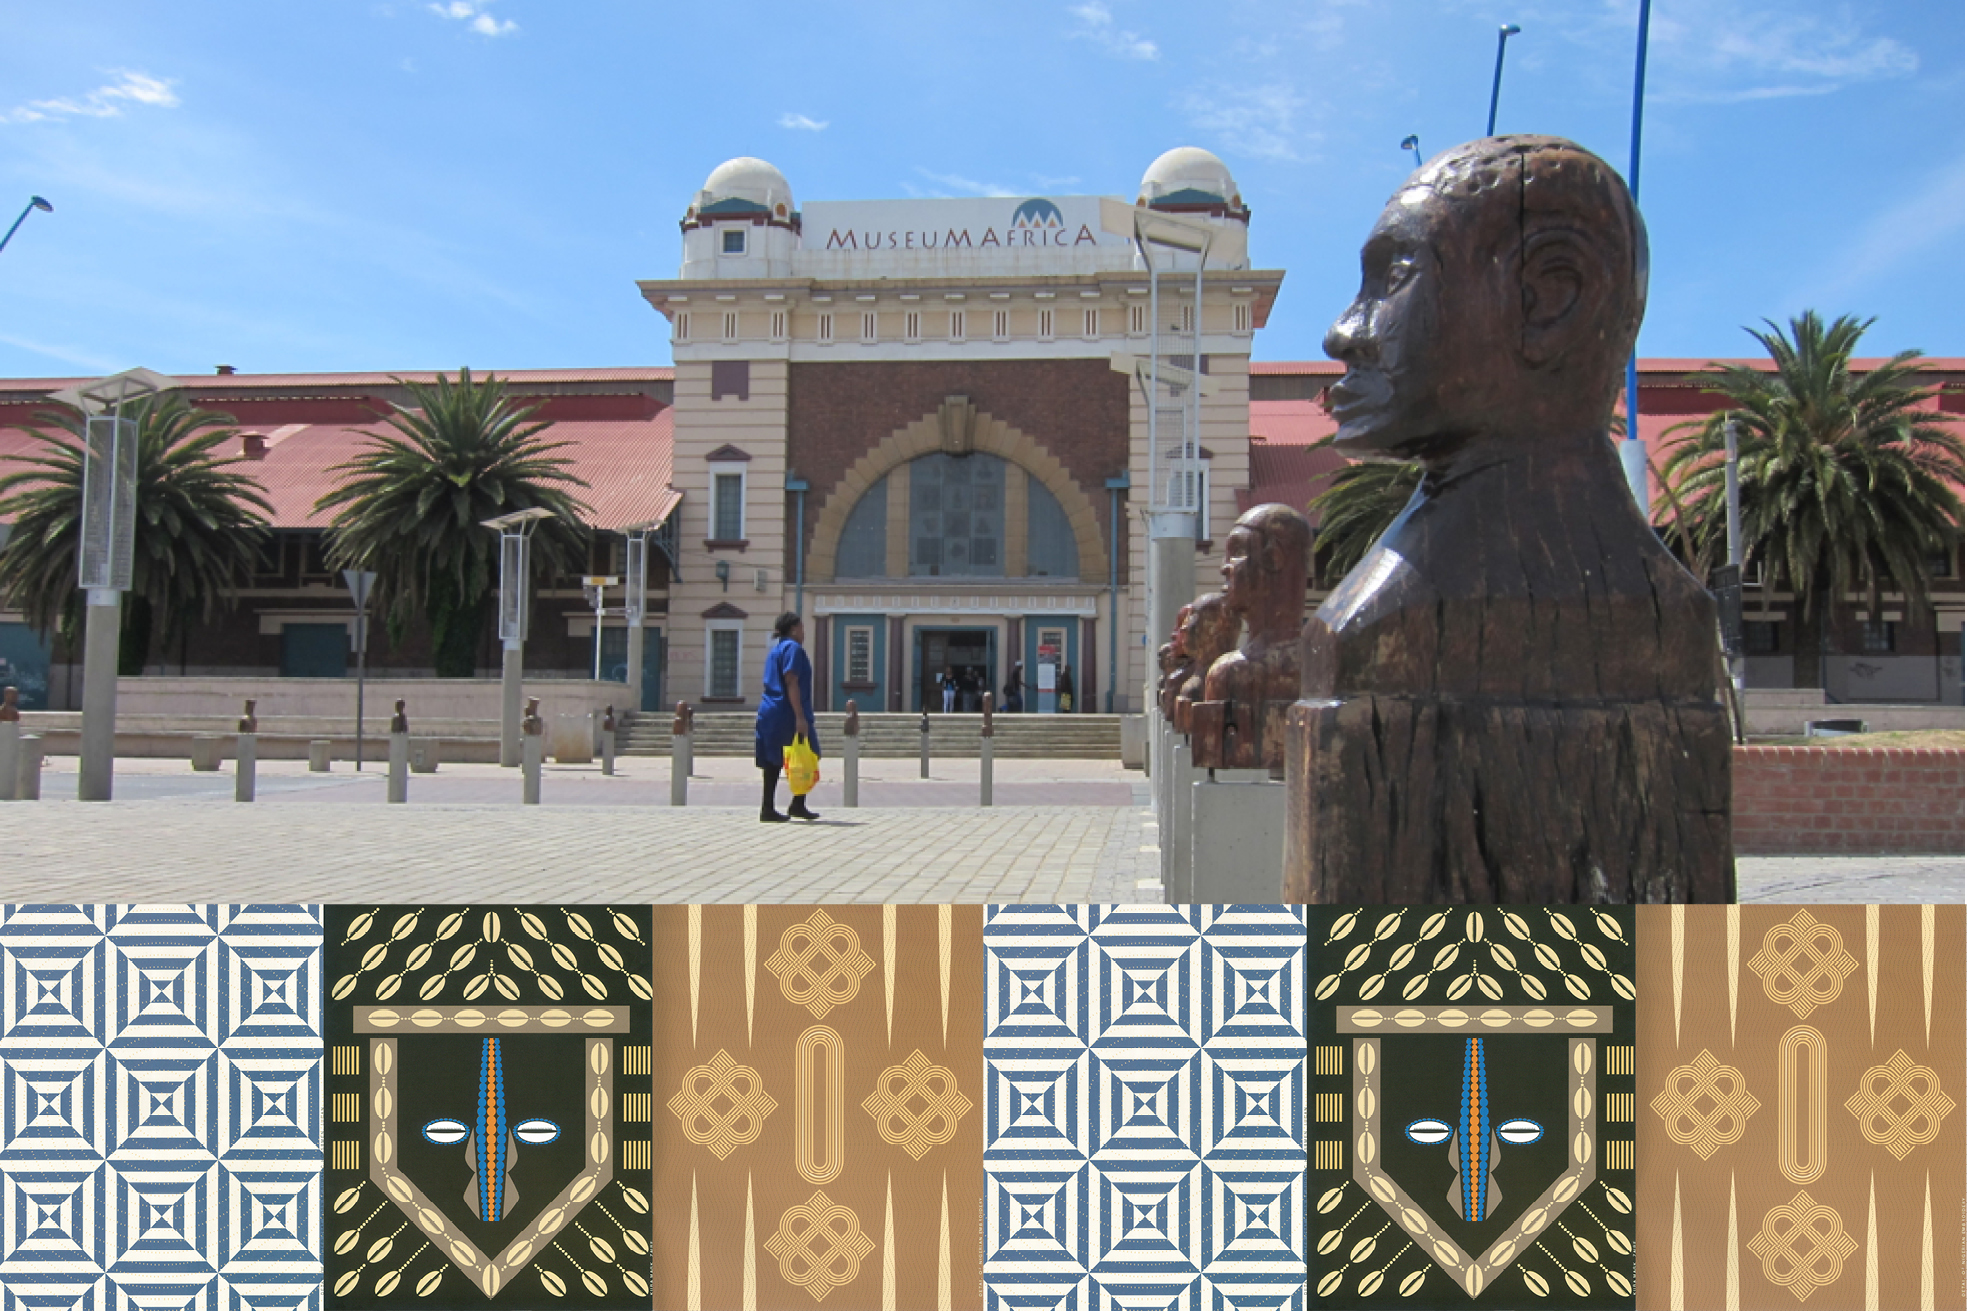 whwWeb_About_whw_Activities_SA_Museum Africa & Patterns.jpg